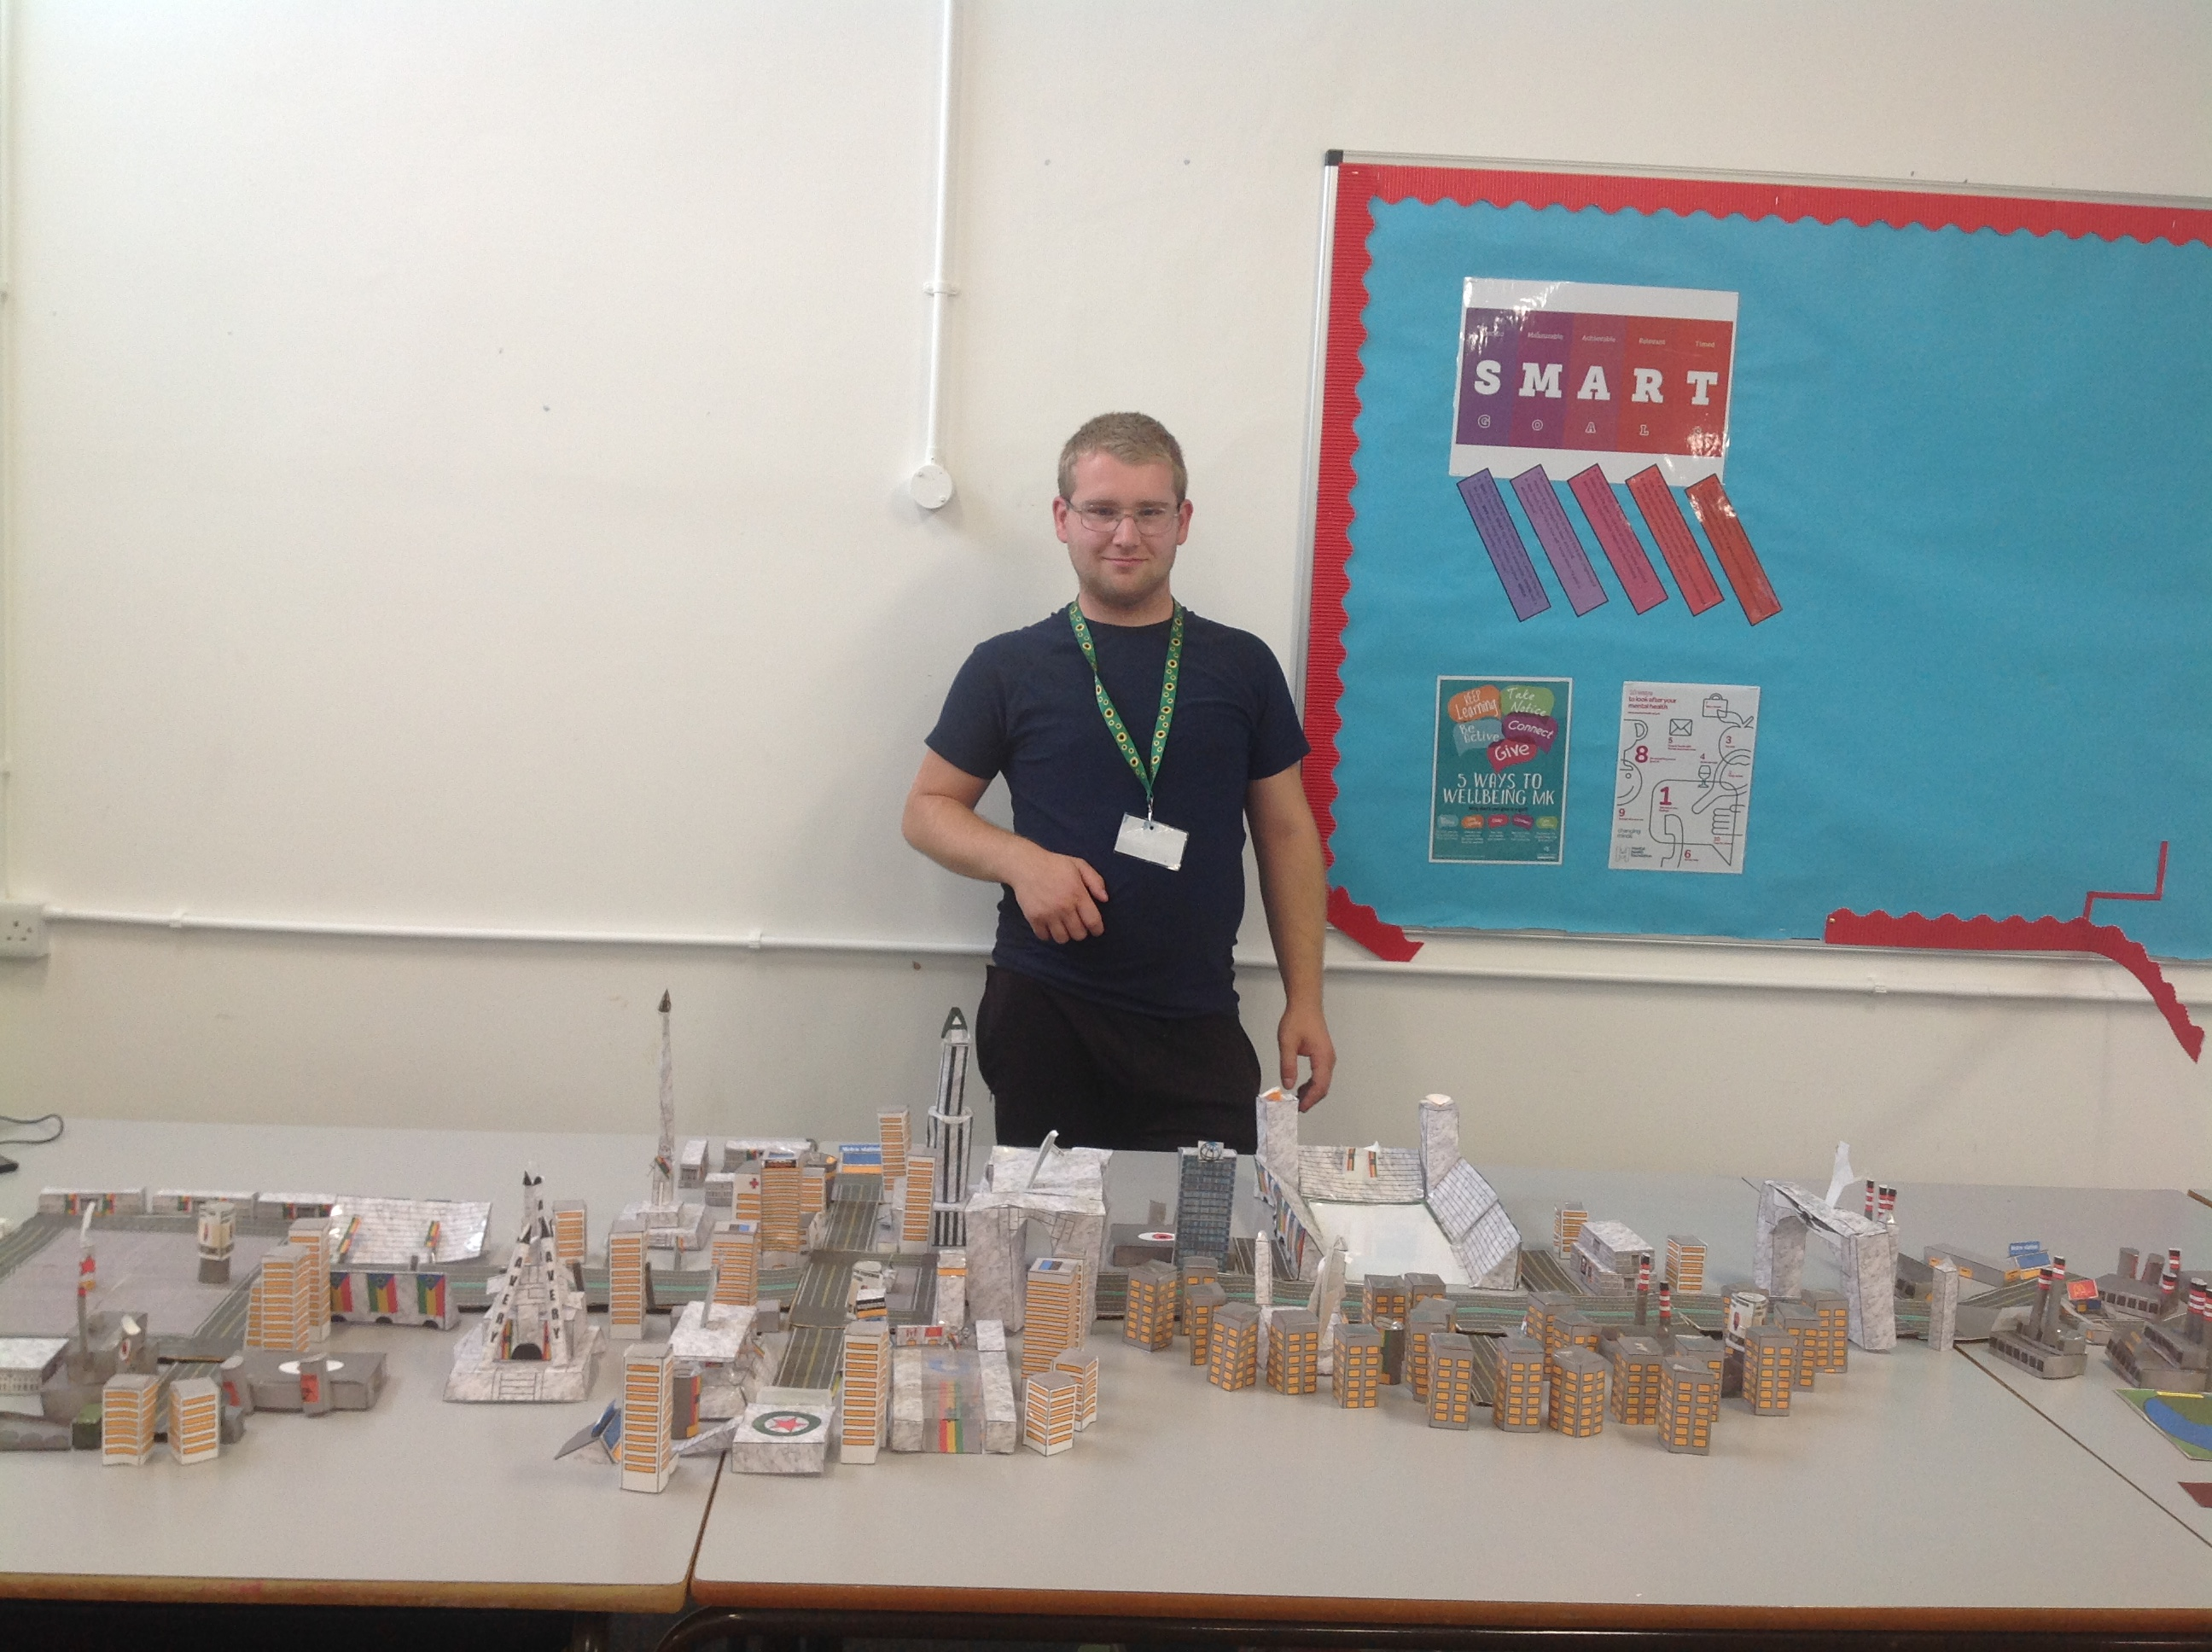 Declan standing with his model city